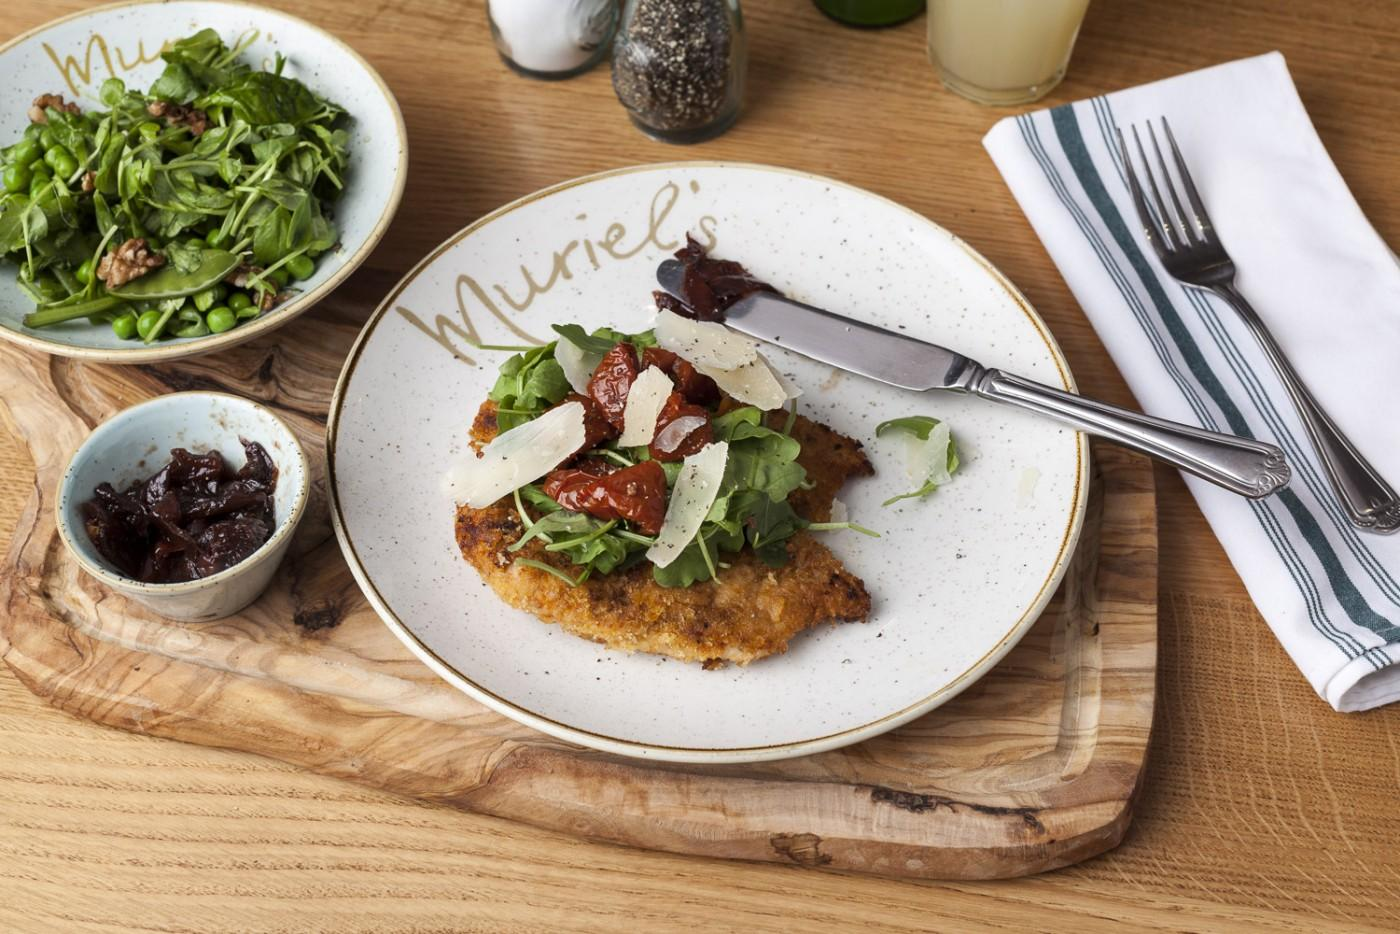 Muriel's Kitchen - South Kensington - London